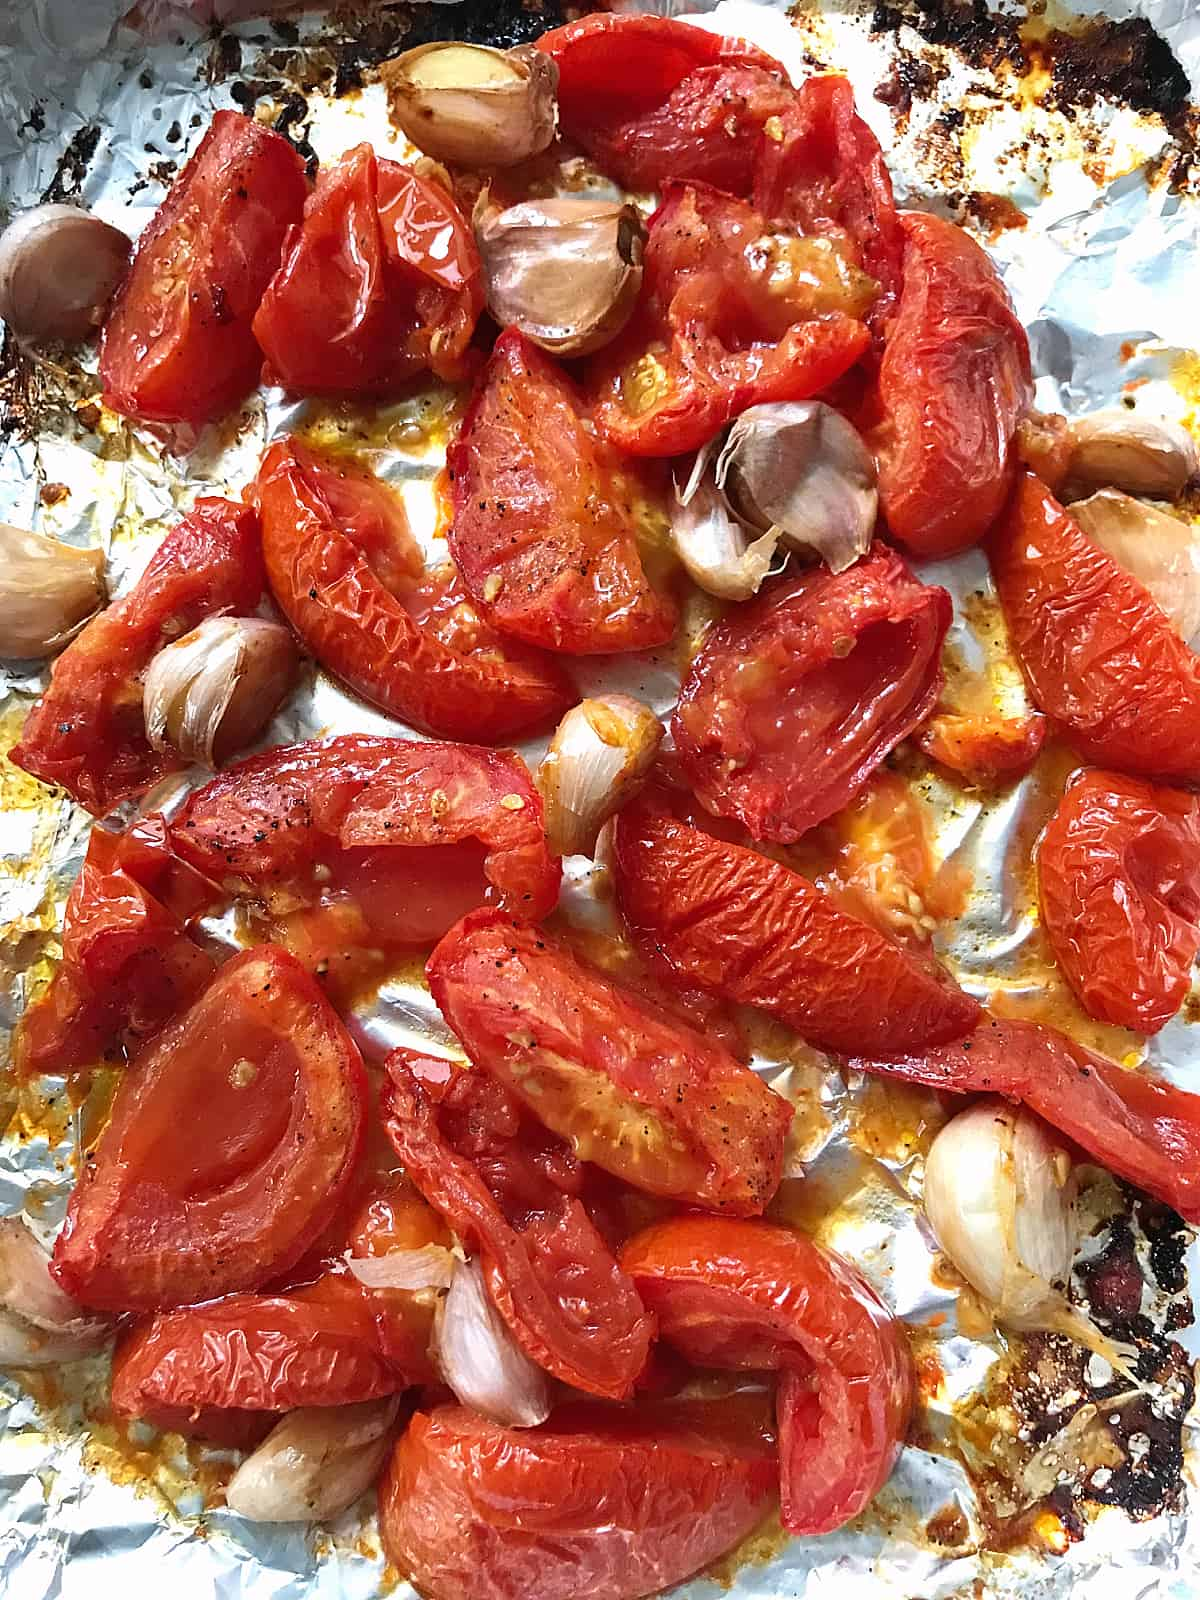 Baked tomato wedges and garlic cloves on aluminum paper